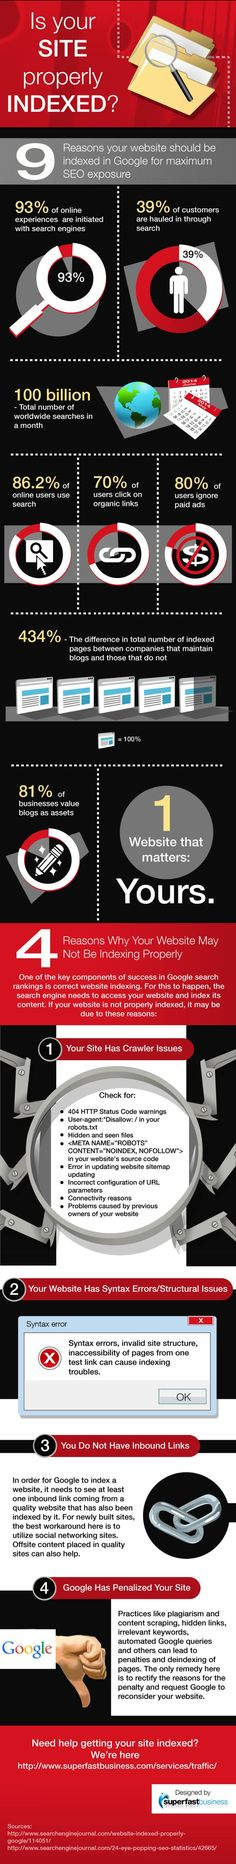 4 Reasons Your Websi